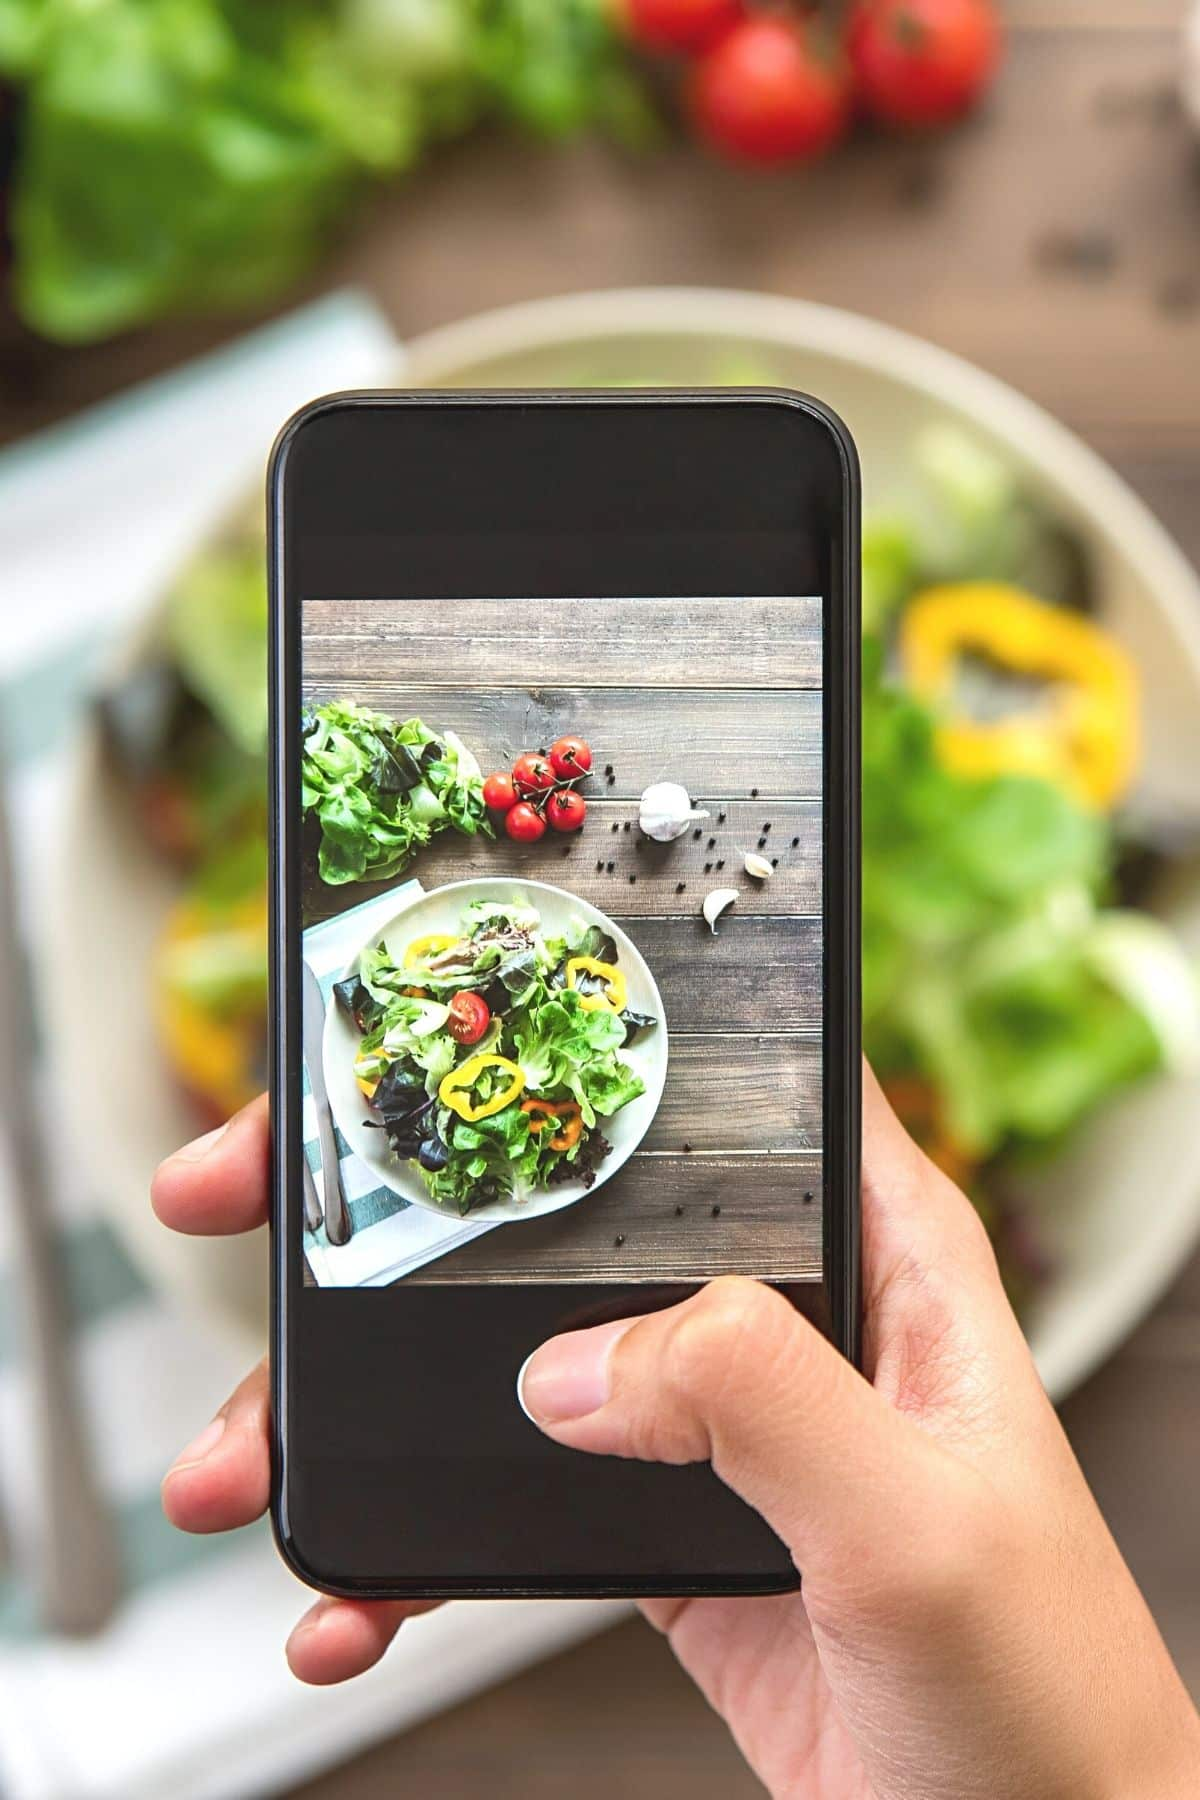 A person taking a picture of a salad with a phone